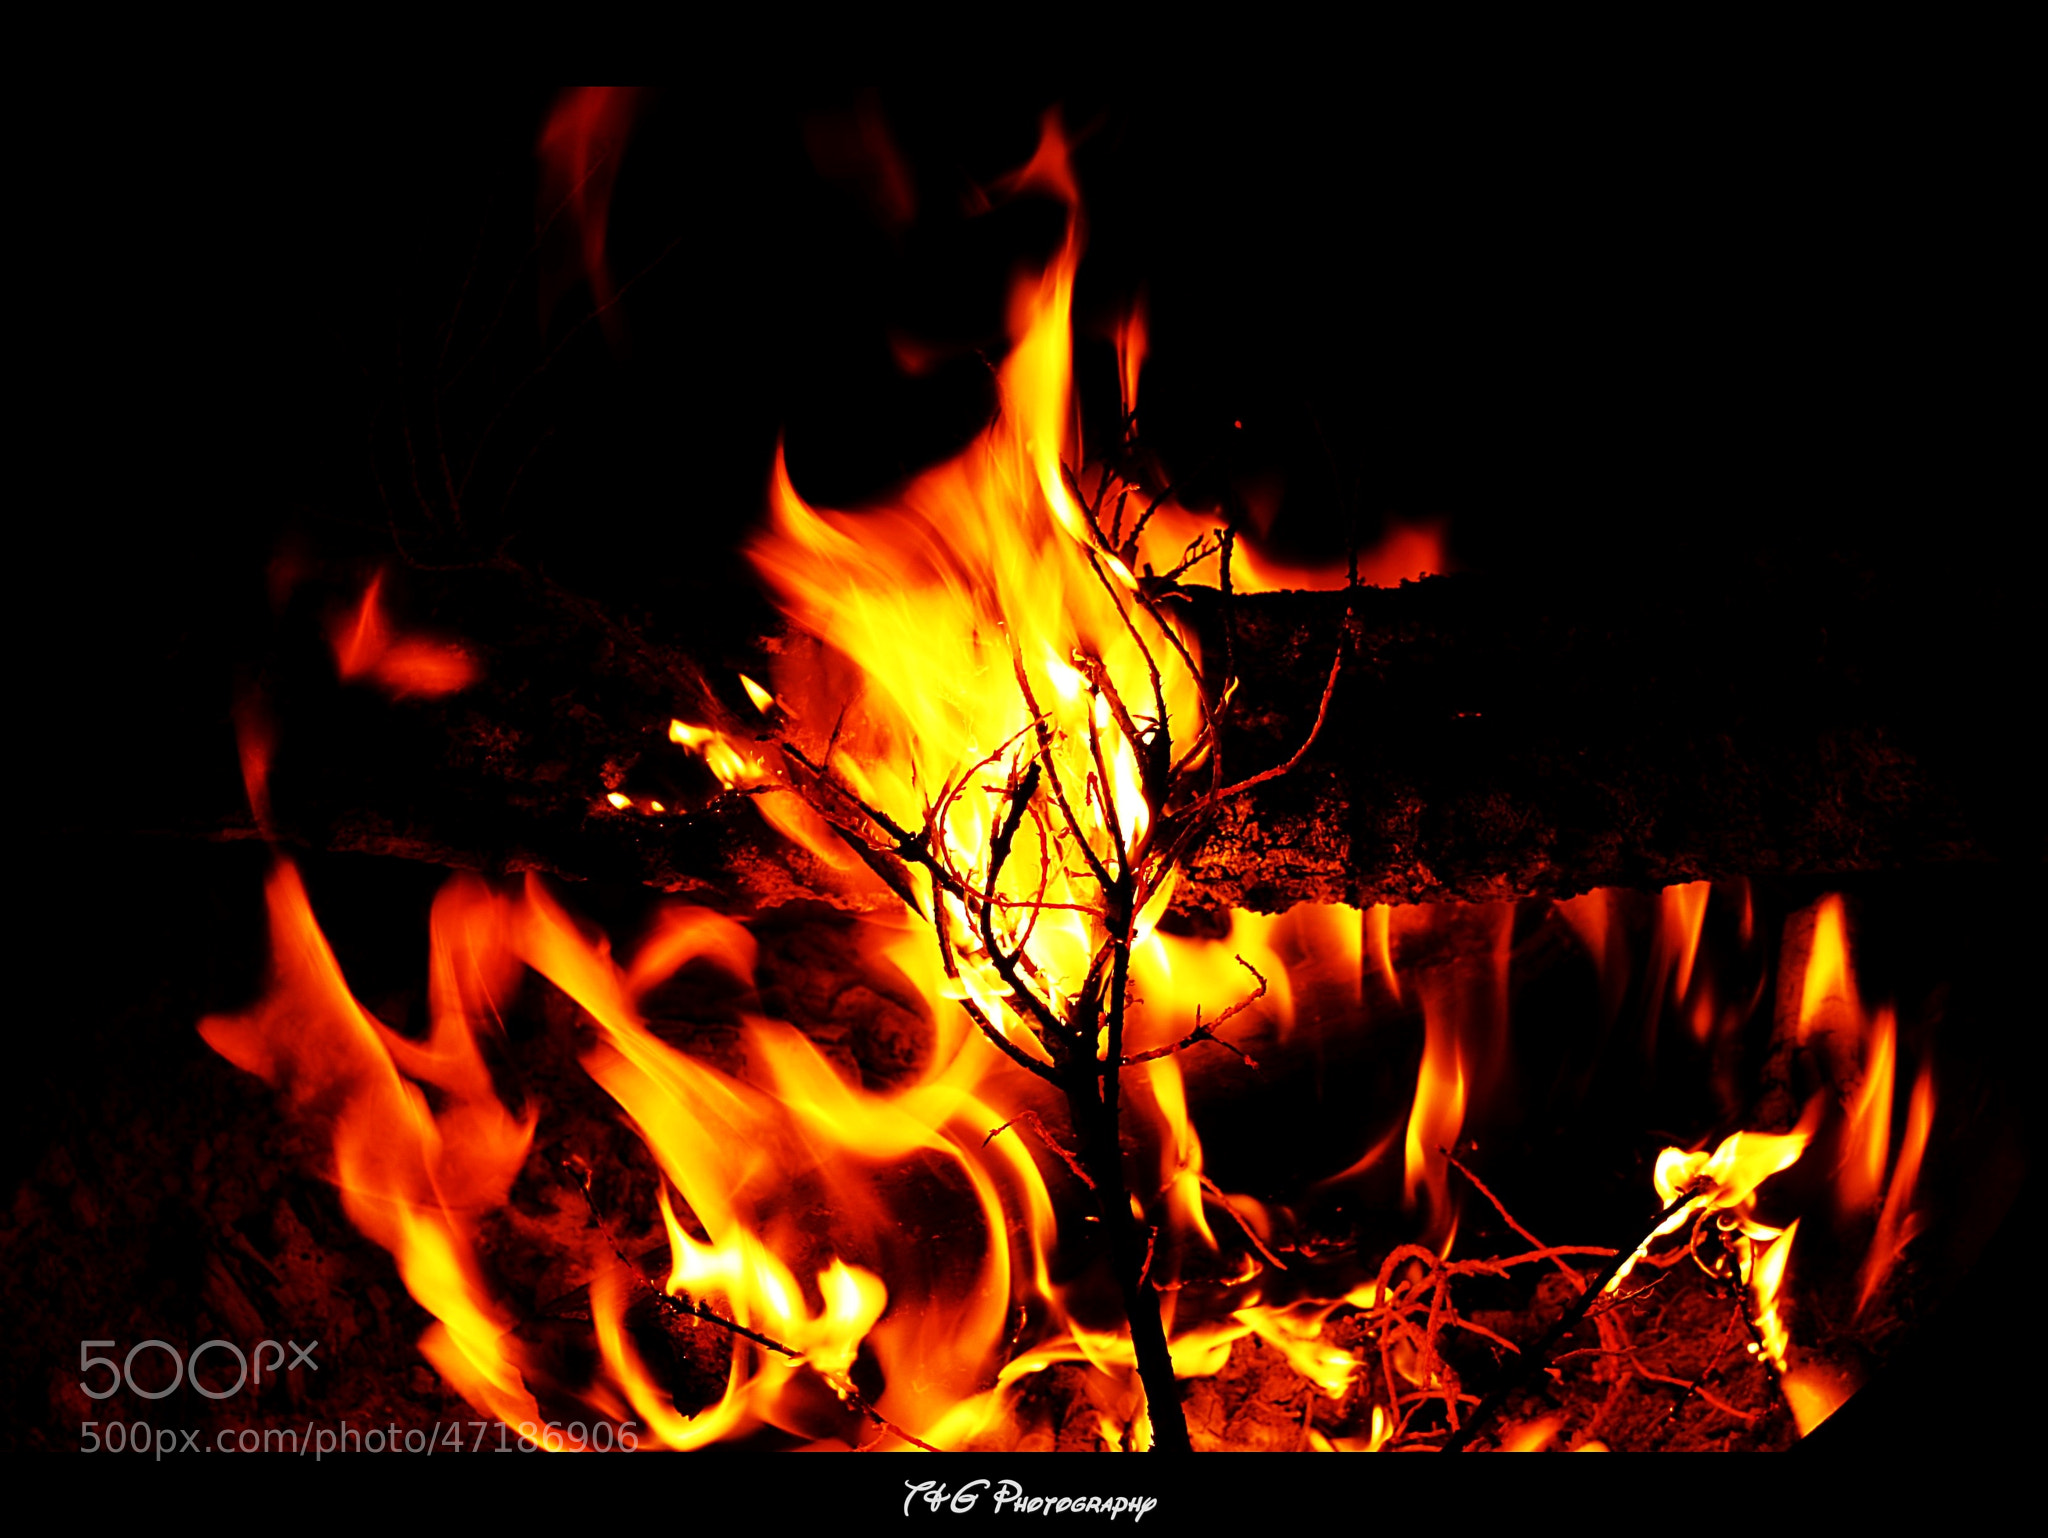 Photograph Fire pit by T&G Photography  on 500px